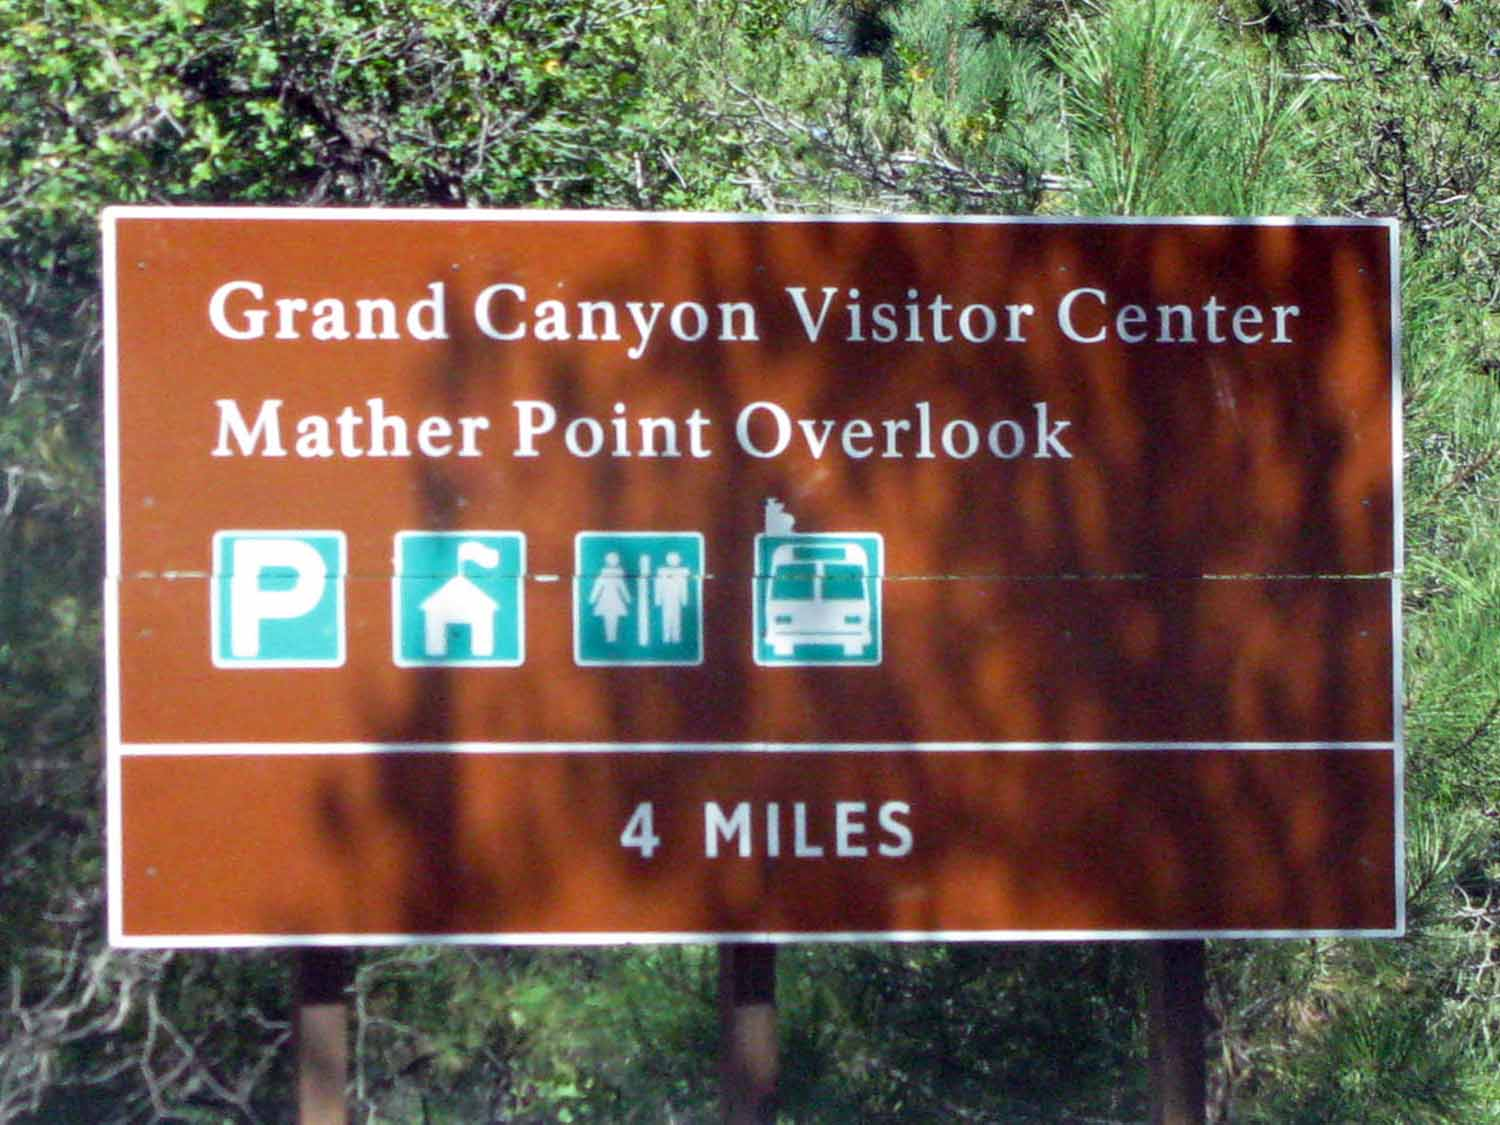 Here we are at the Grand Canyon staying at Mather Campground